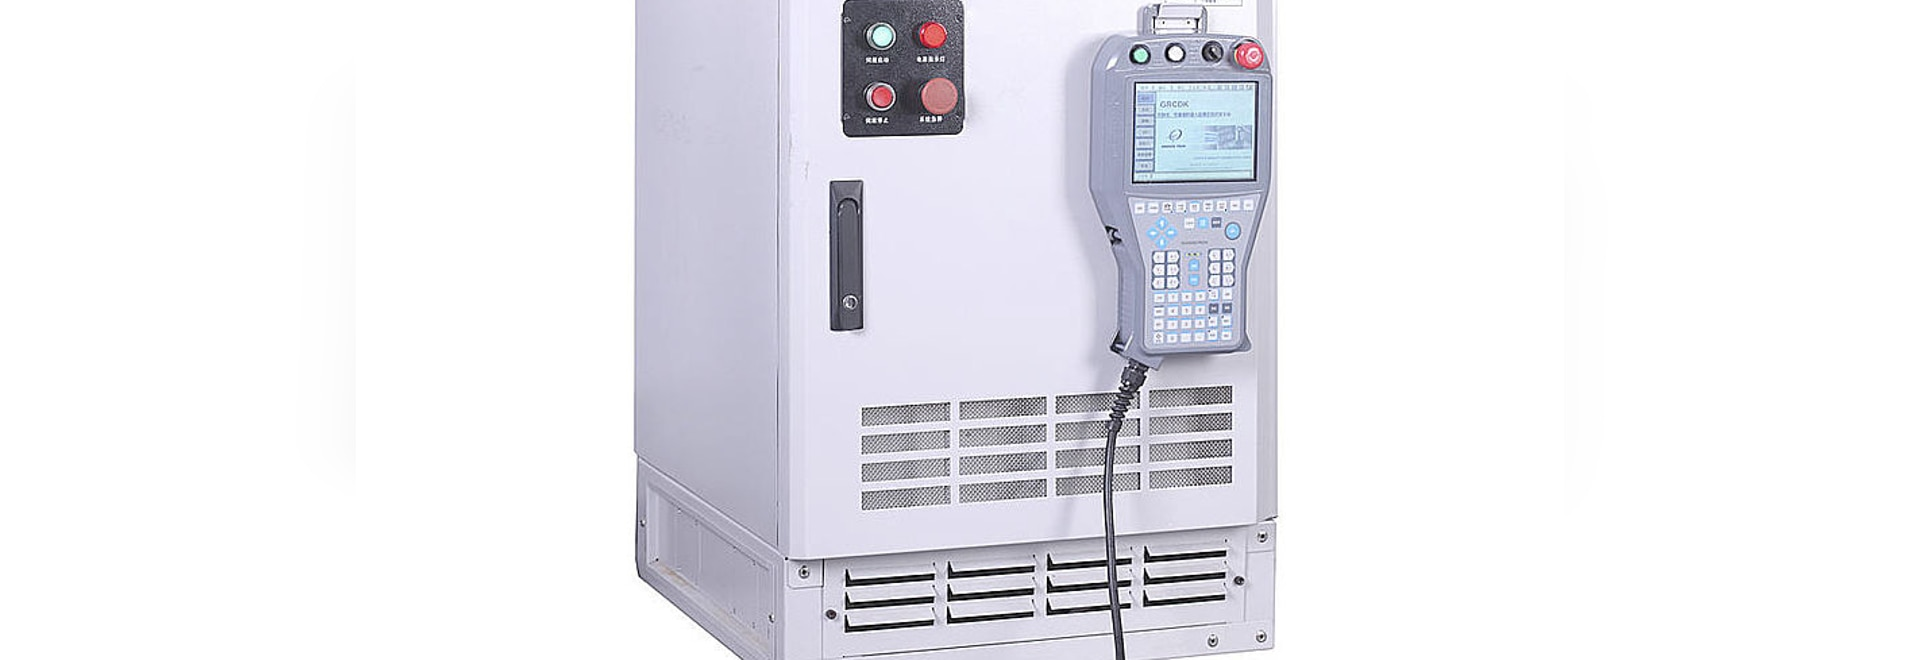 NEW : GRC1000 Universal Robot Controller => a PERFECT solution !